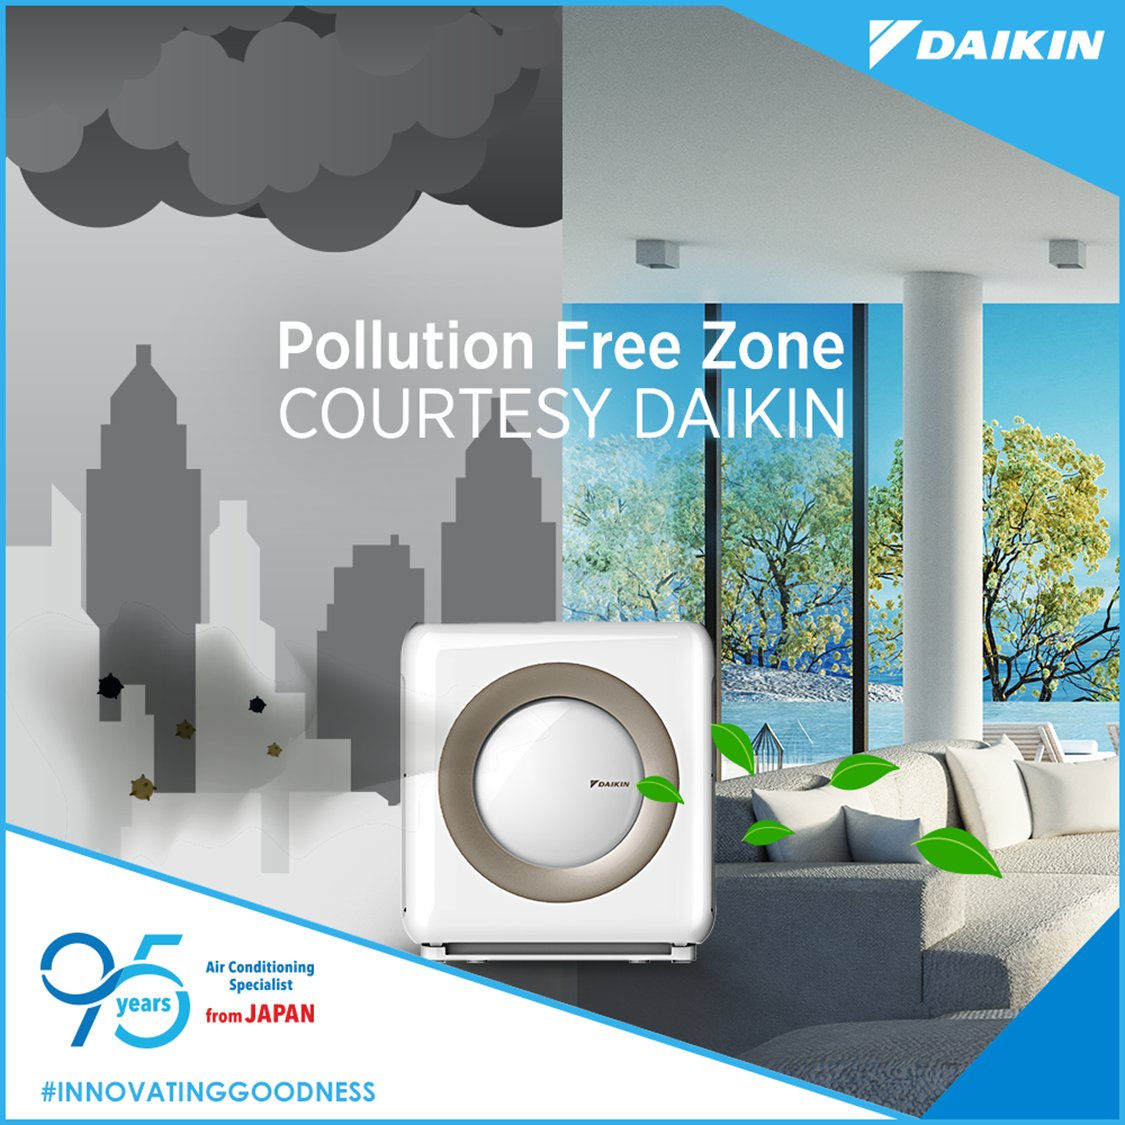 Unmask and breathe freely every time you step inside courtesy a Daikin Air Purifier. InnovatingGoodness https t